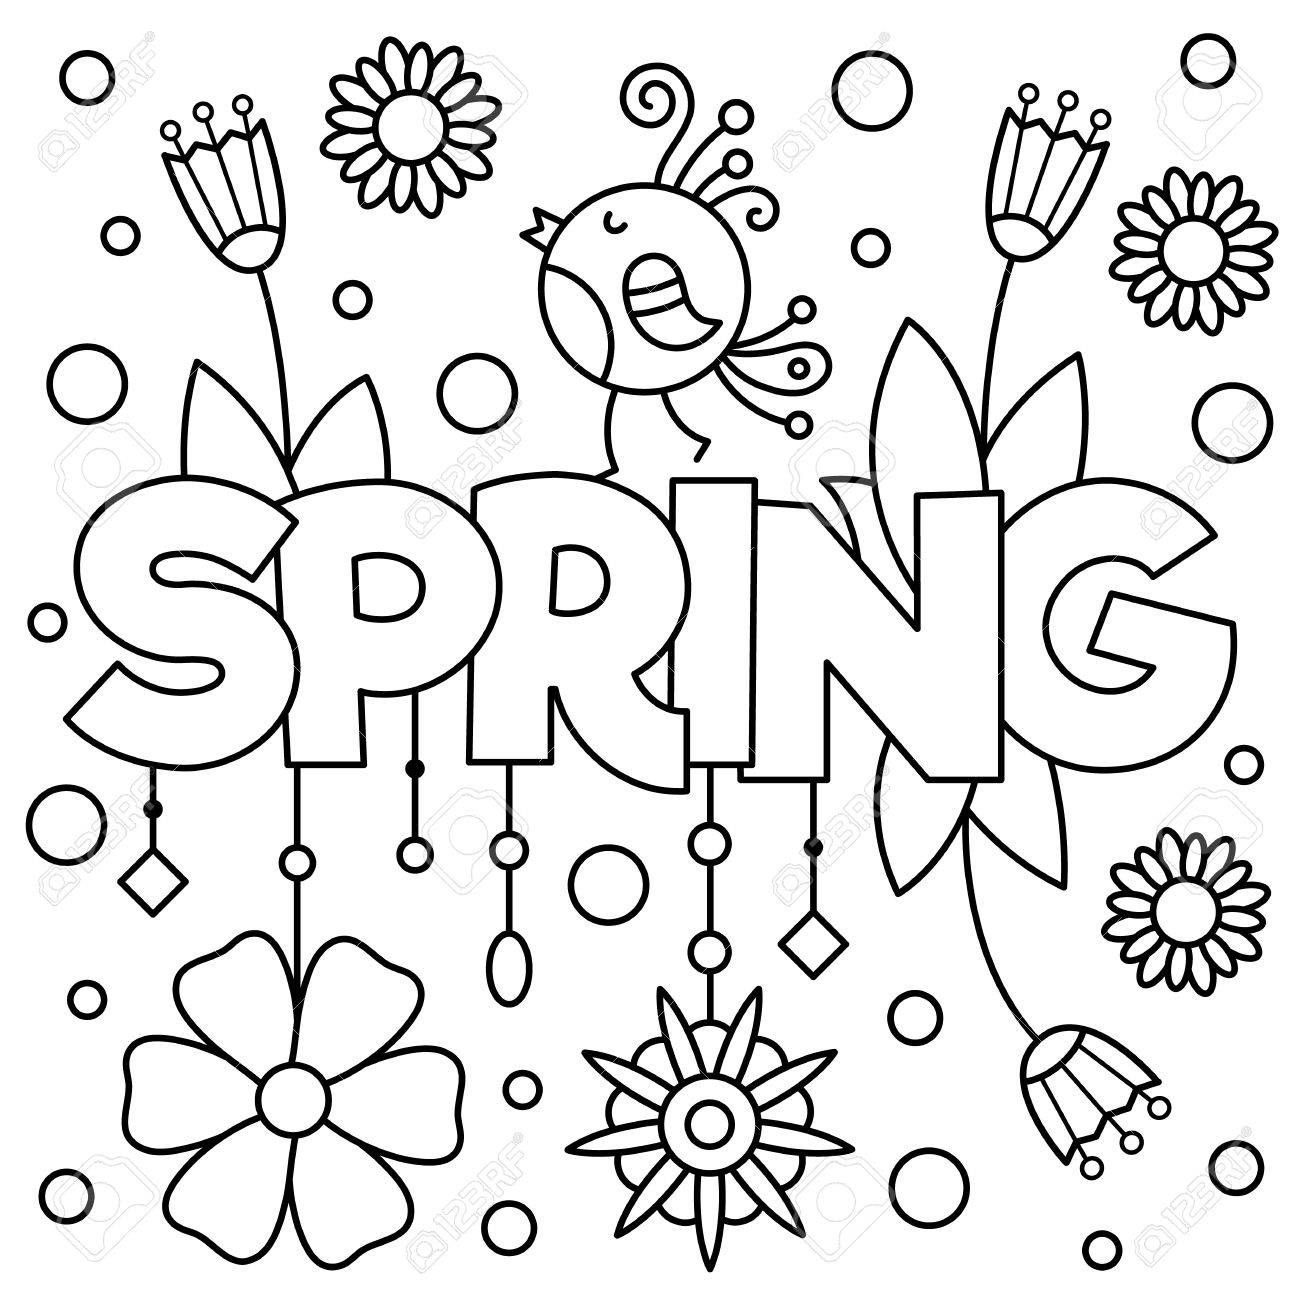 47+ Crayola free coloring pages spring information